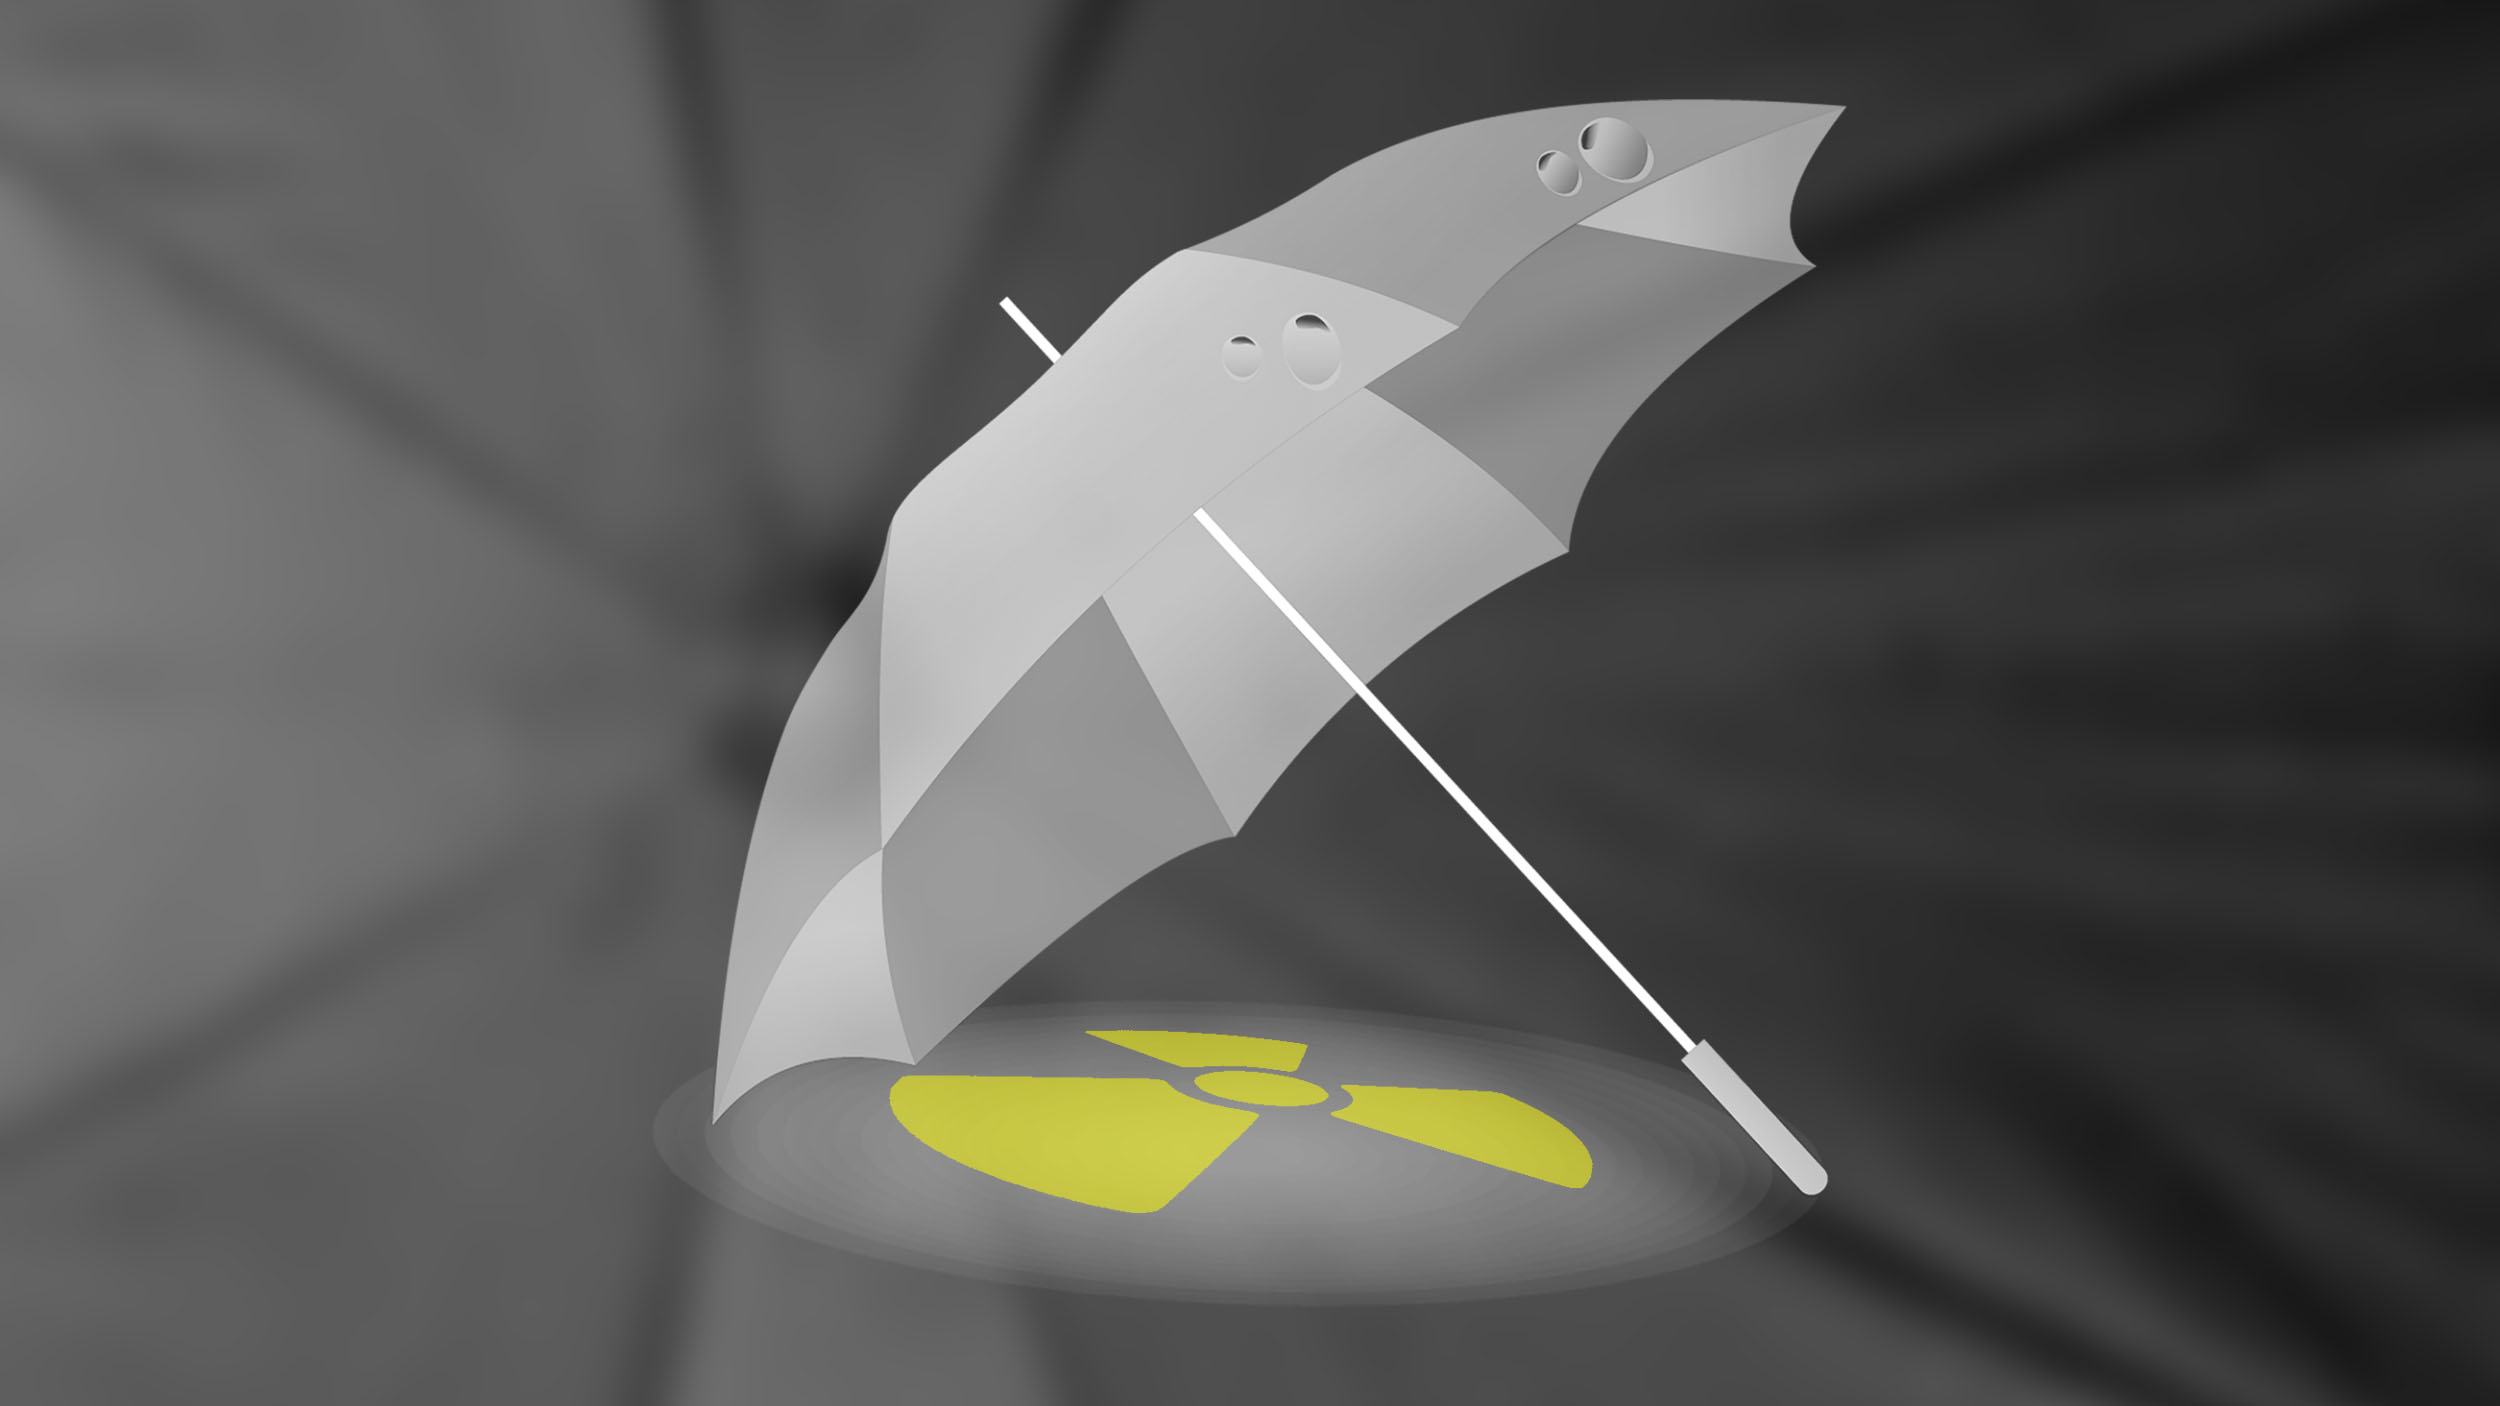 Folding the Umbrella: Nuclear Allies, the NPT and the Ban Treaty